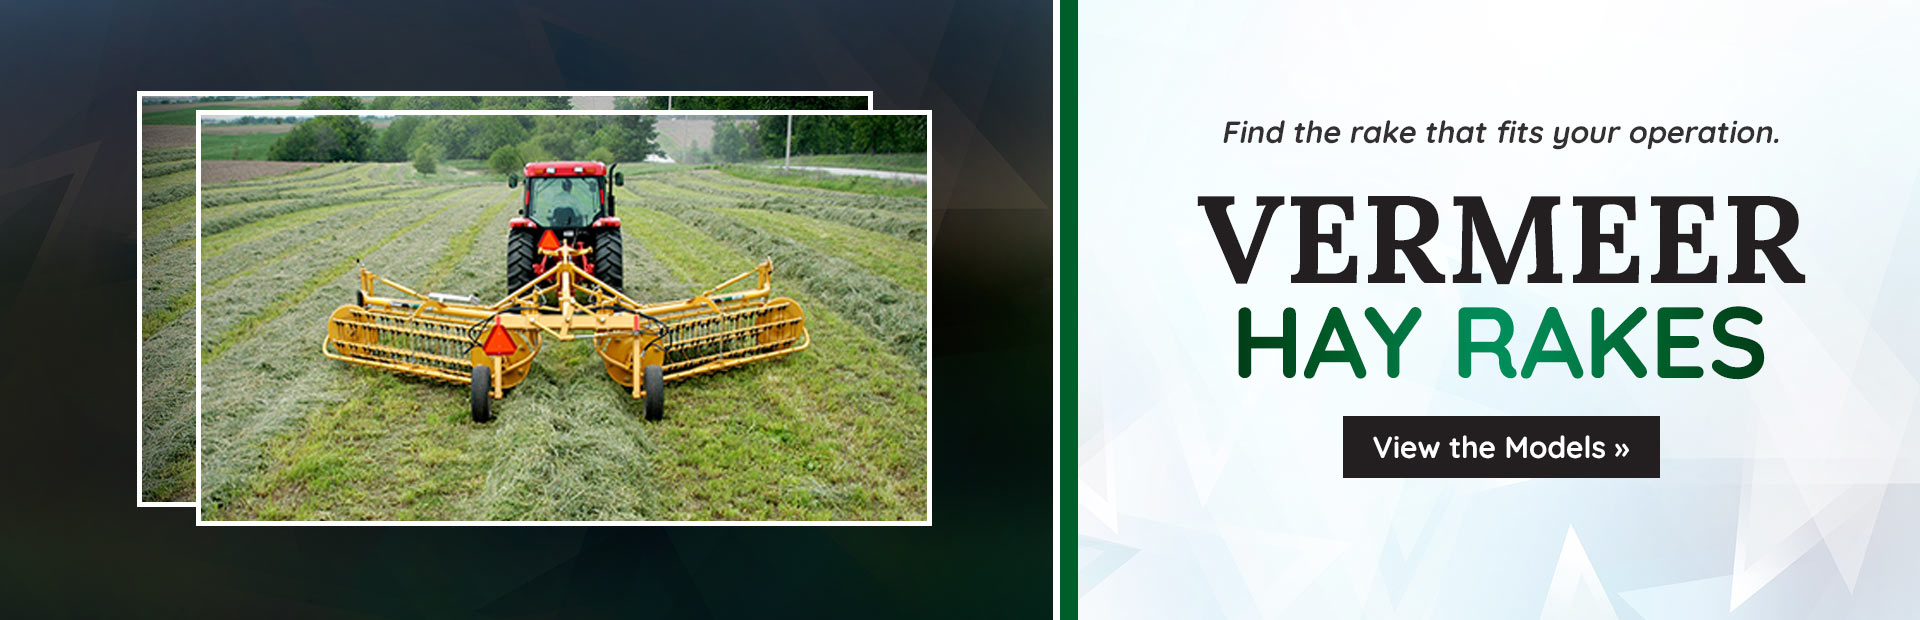 Vermeer Hay Rakes: Click here to view the models.